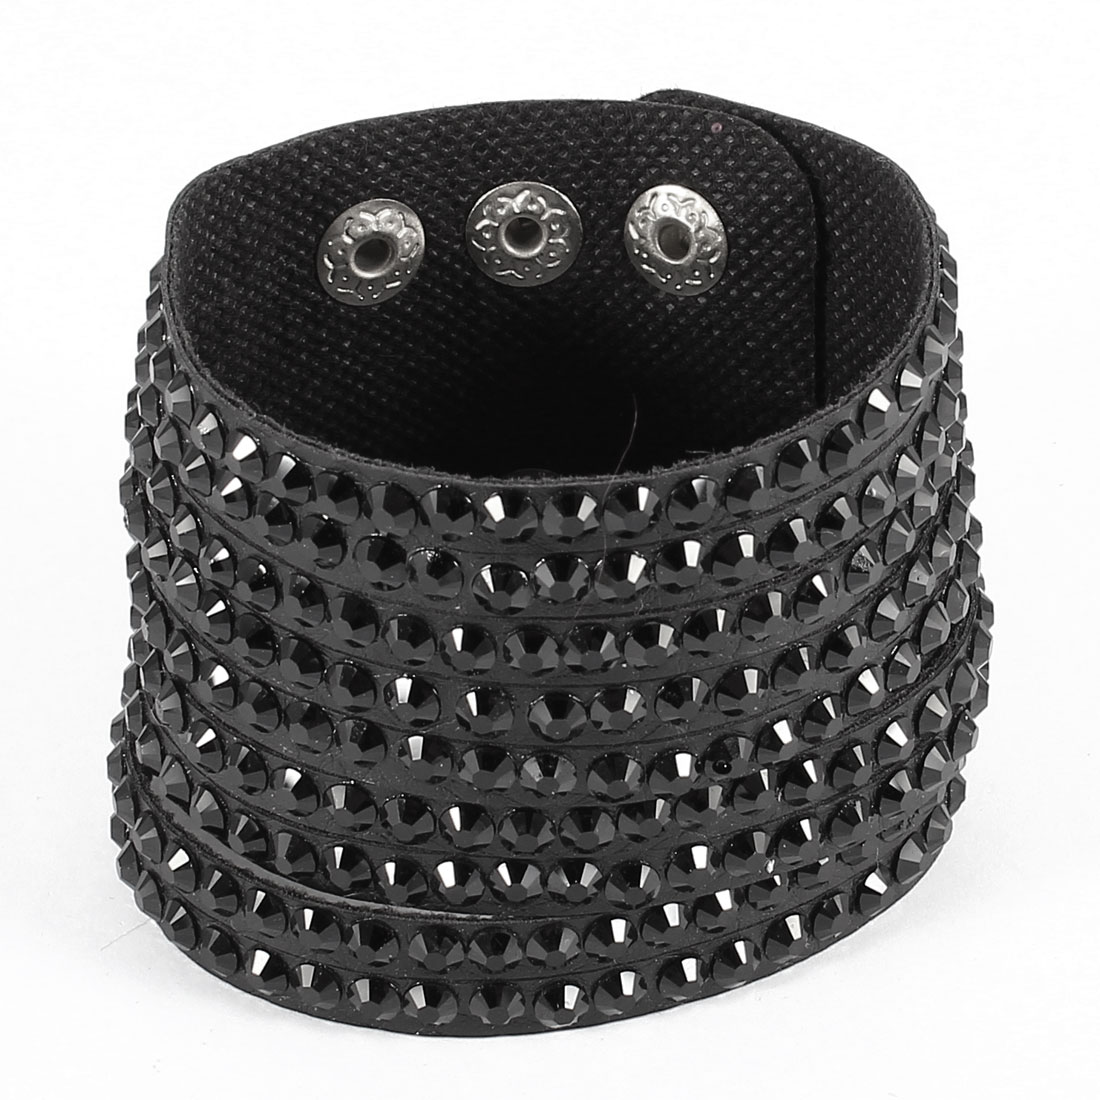 Black Plastic Crystal Studded Press Button Faux Leather Bracelet Bangle